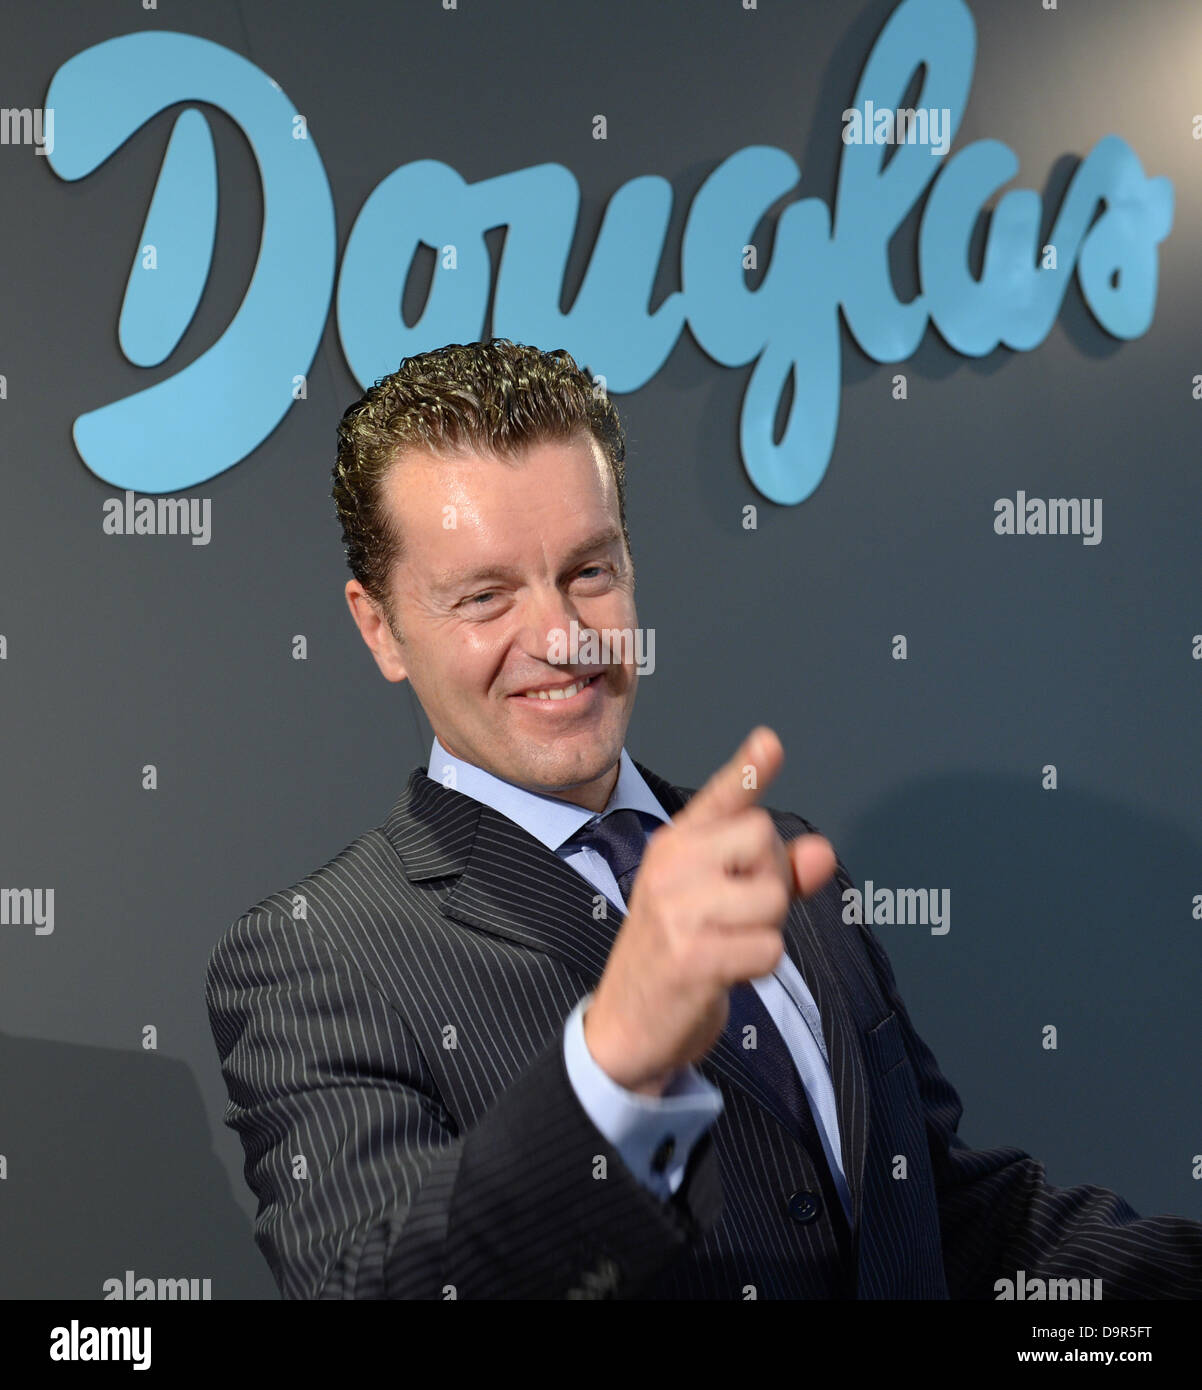 CEO of Douglas Holding AG, Henning Kreke, points to the photographers after a press conference of the company in - Stock Image